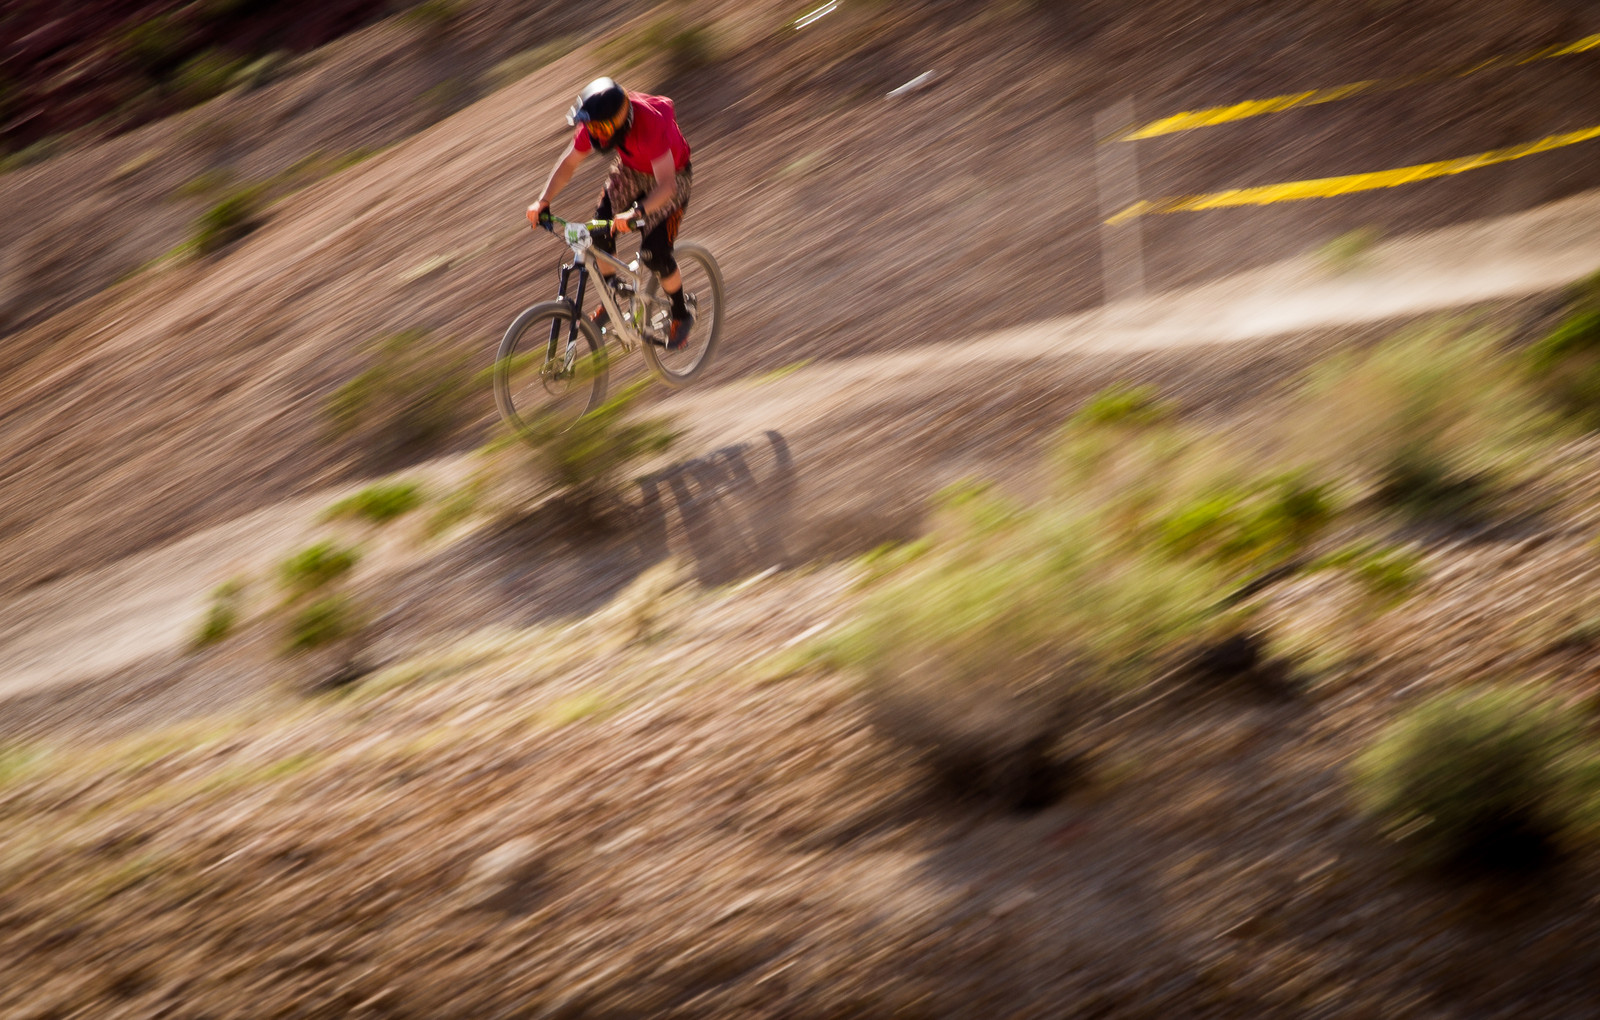 2017 Reaper Madness DH at Bootleg Canyon-41 - 2017 Reaper Madness DH Photos - Mountain Biking Pictures - Vital MTB